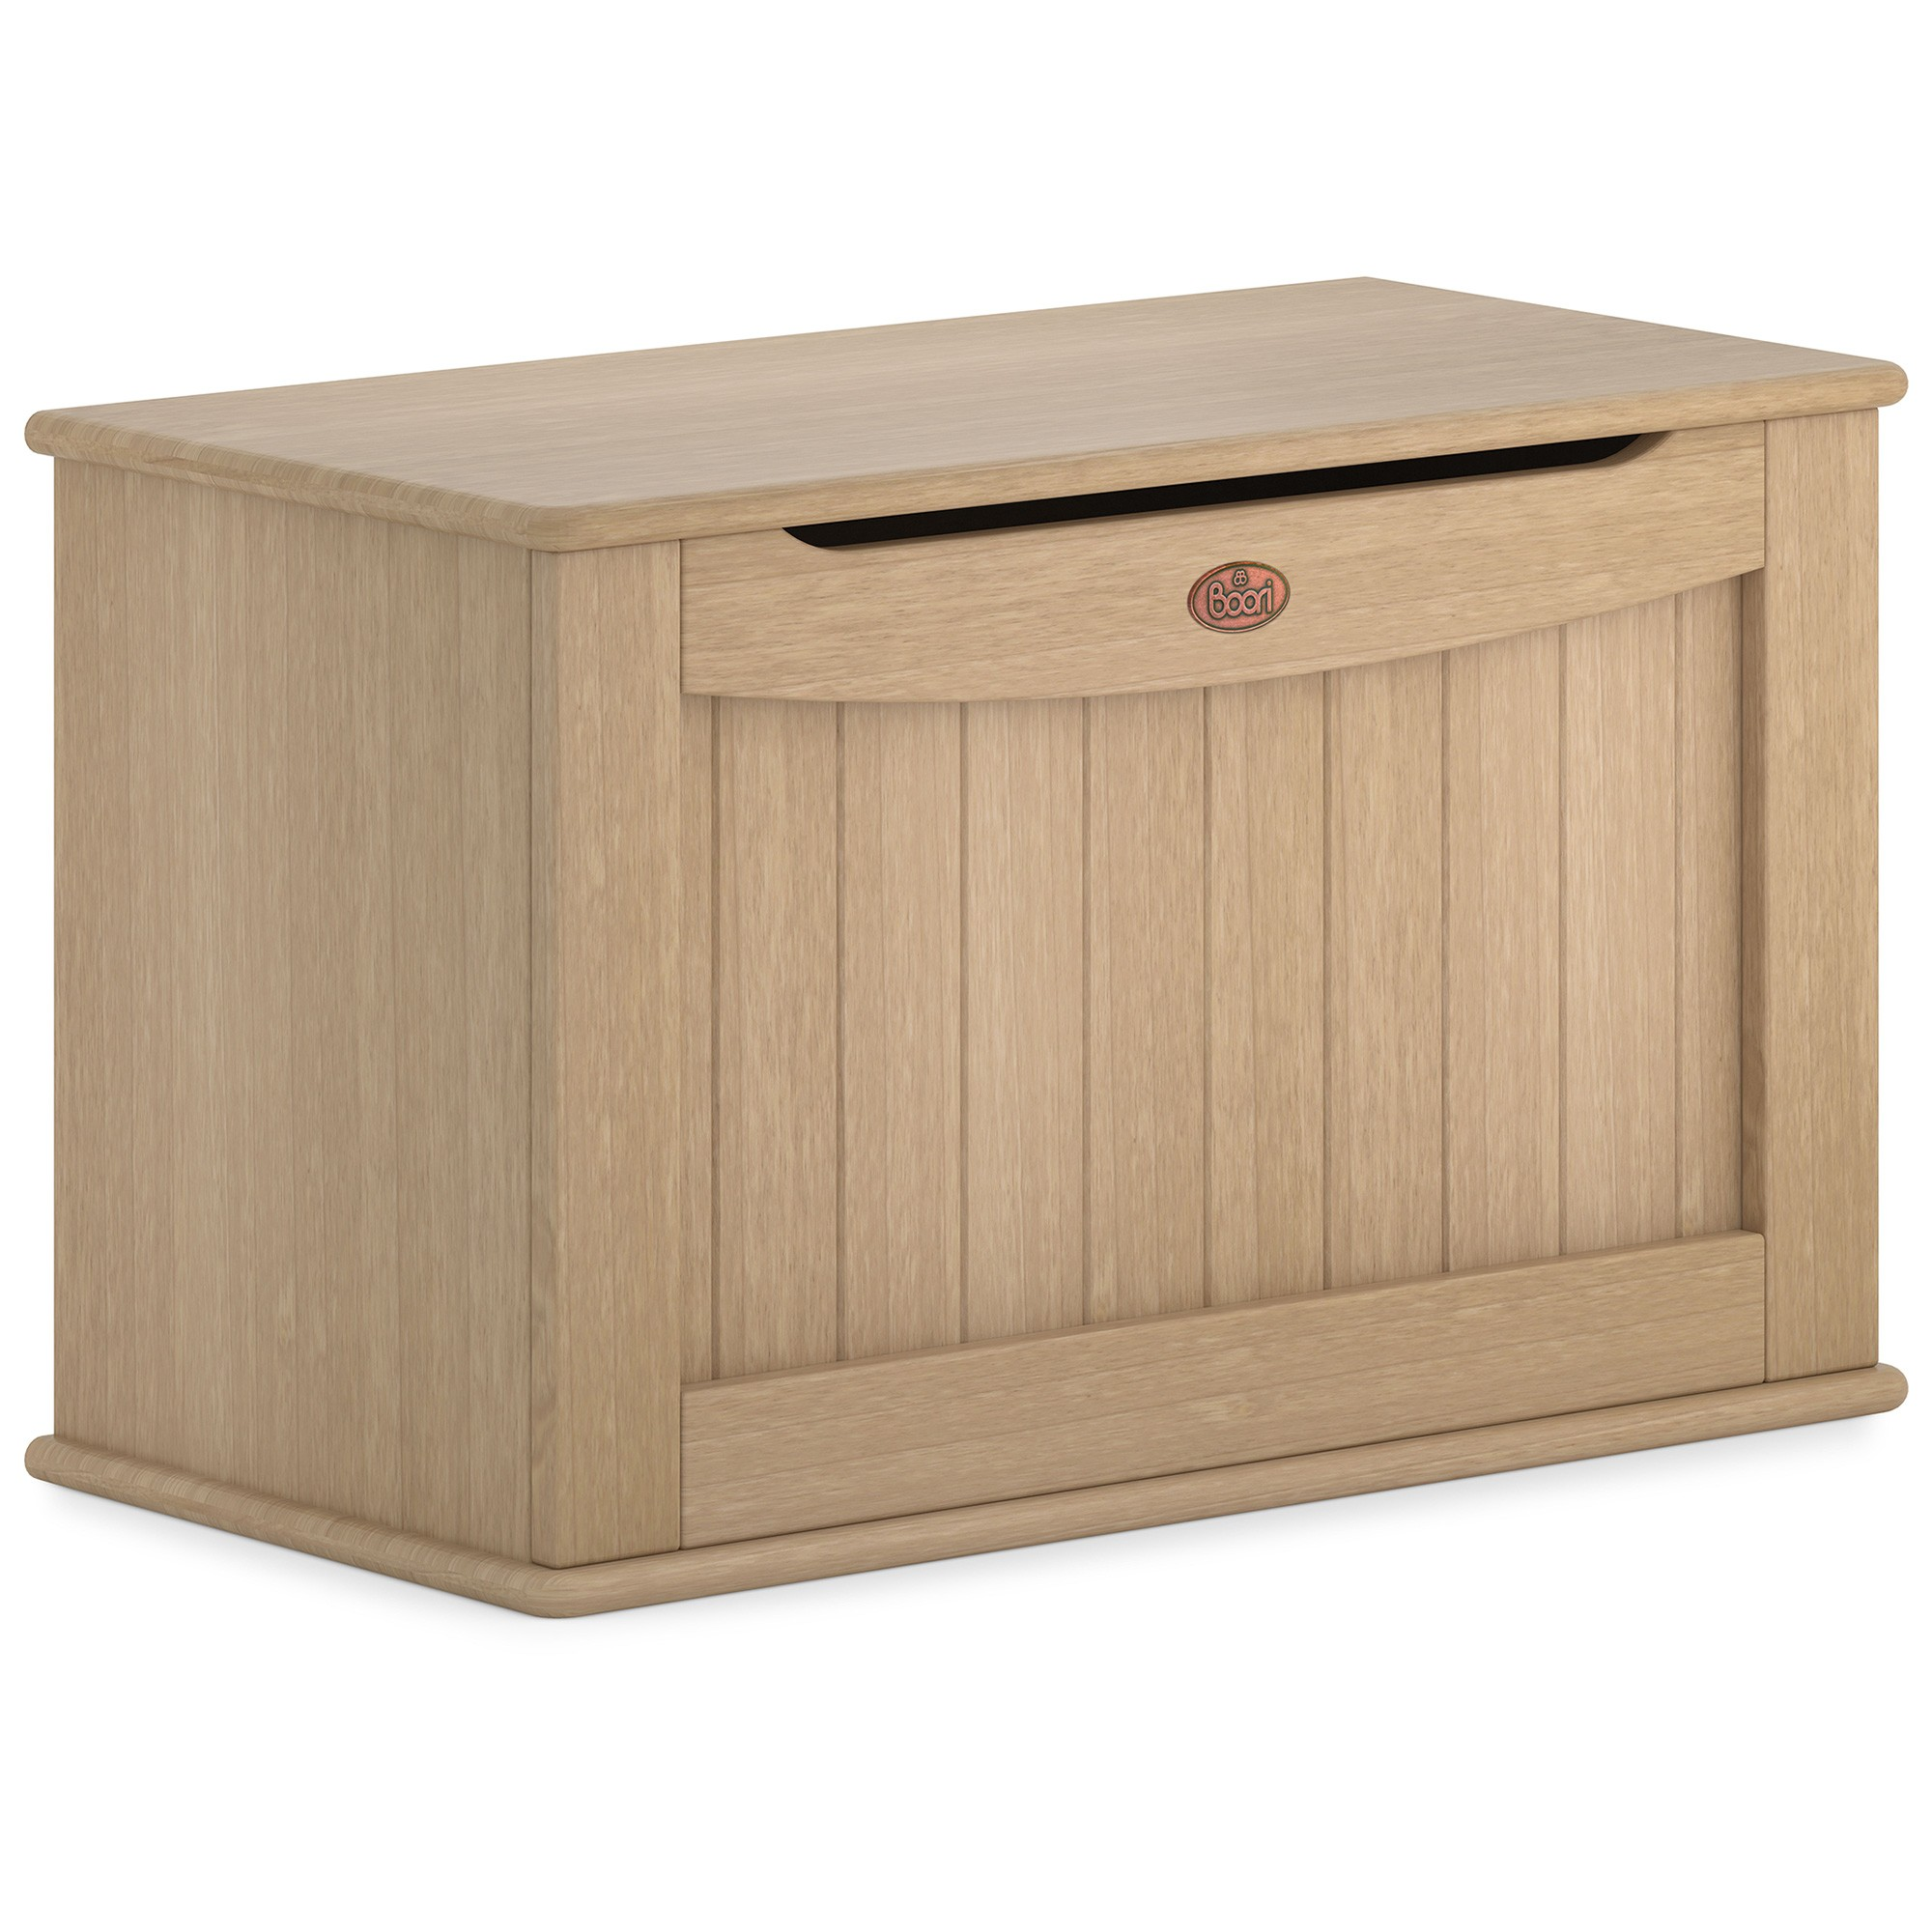 Boori Wooden Toy Box, Almond